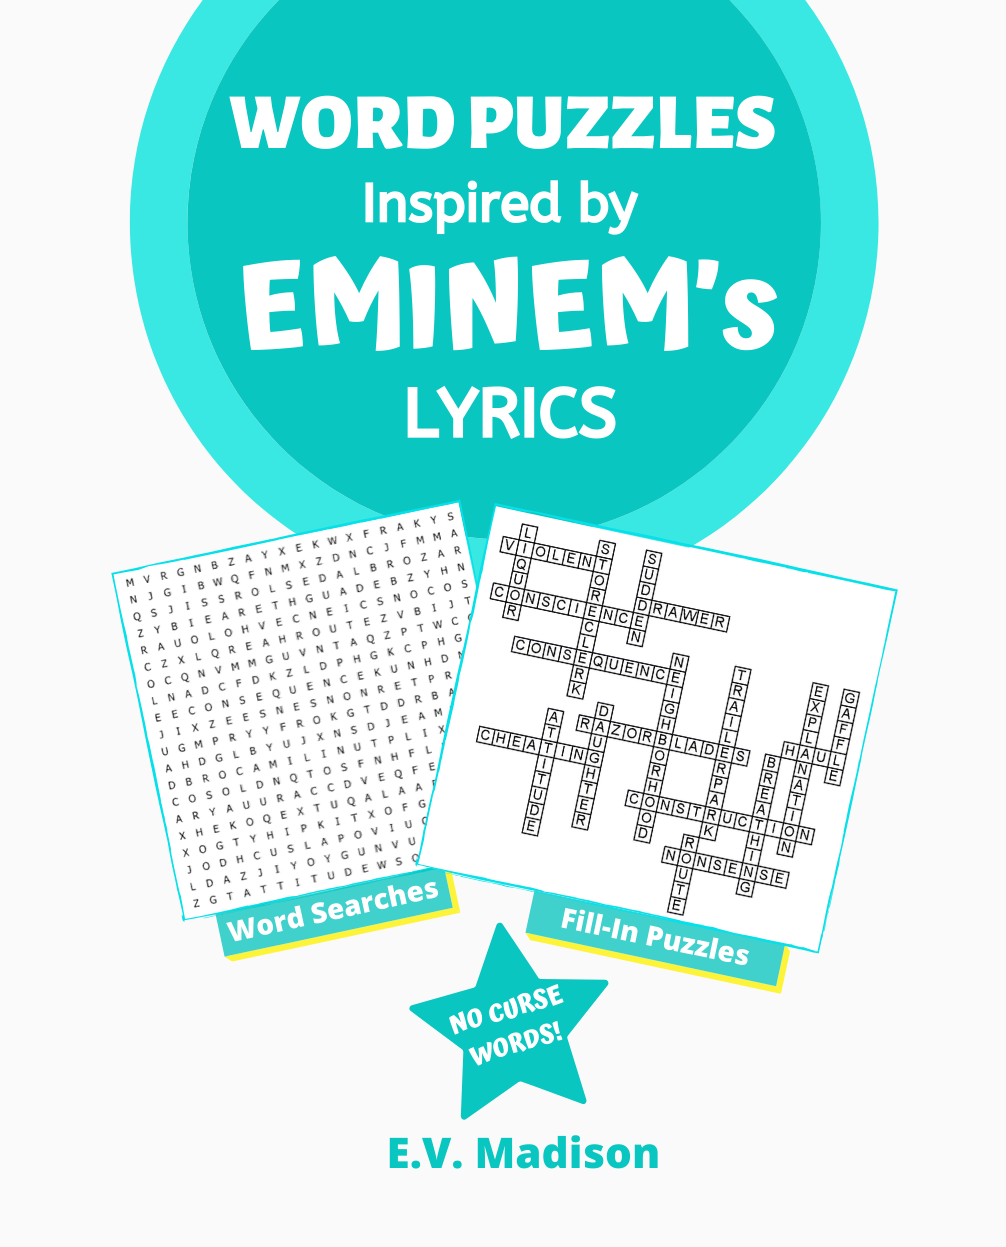 Word Puzzles Inspired by EMINEM's Lyrics